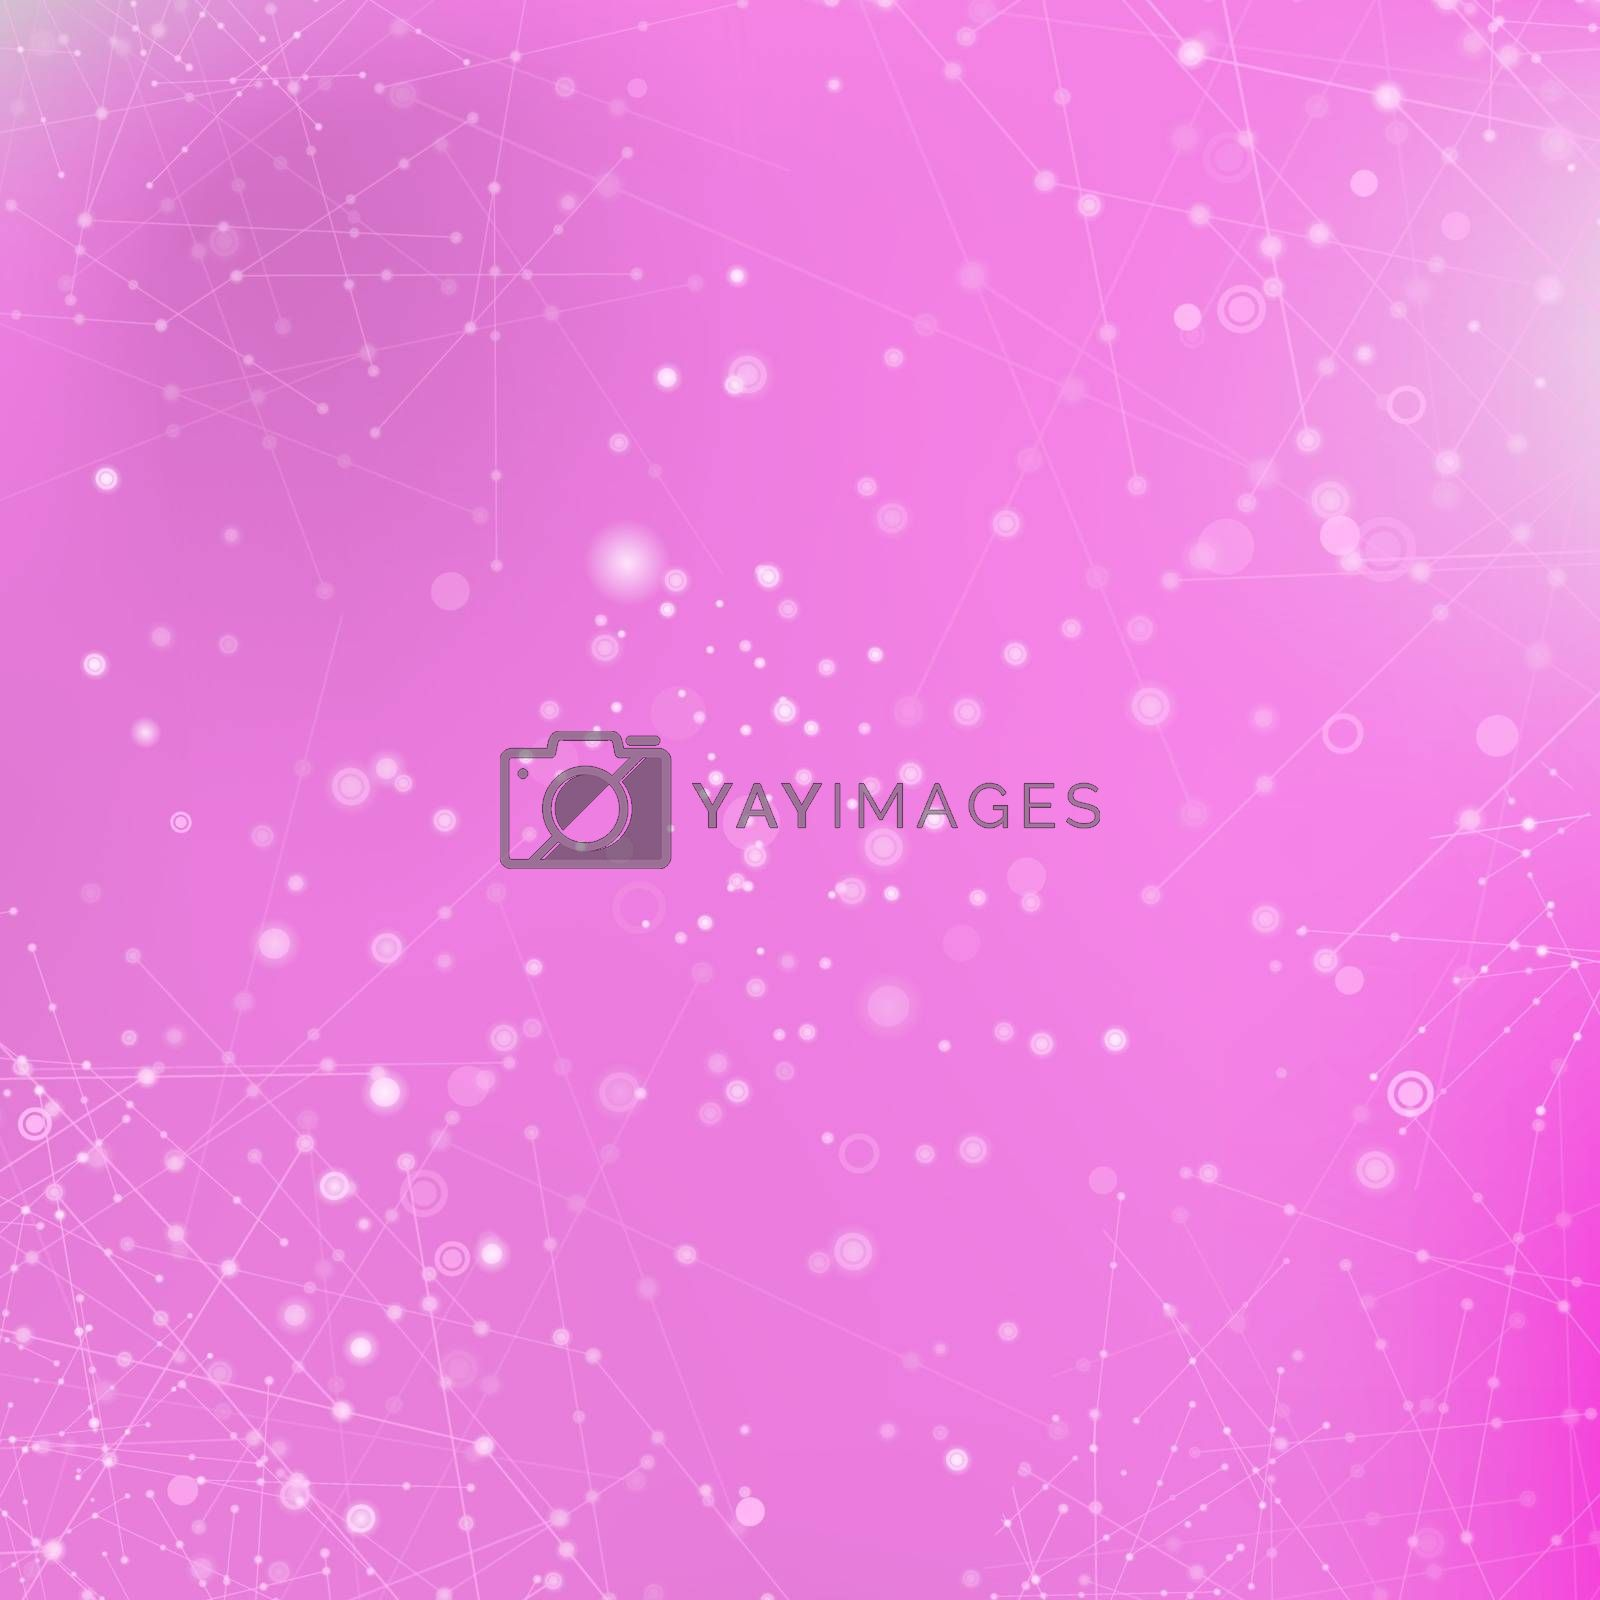 Pink Technology Background with Particle, Molecule Structure. Genetic and Chemical Compounds. Communication Concept. Space and Constellations.